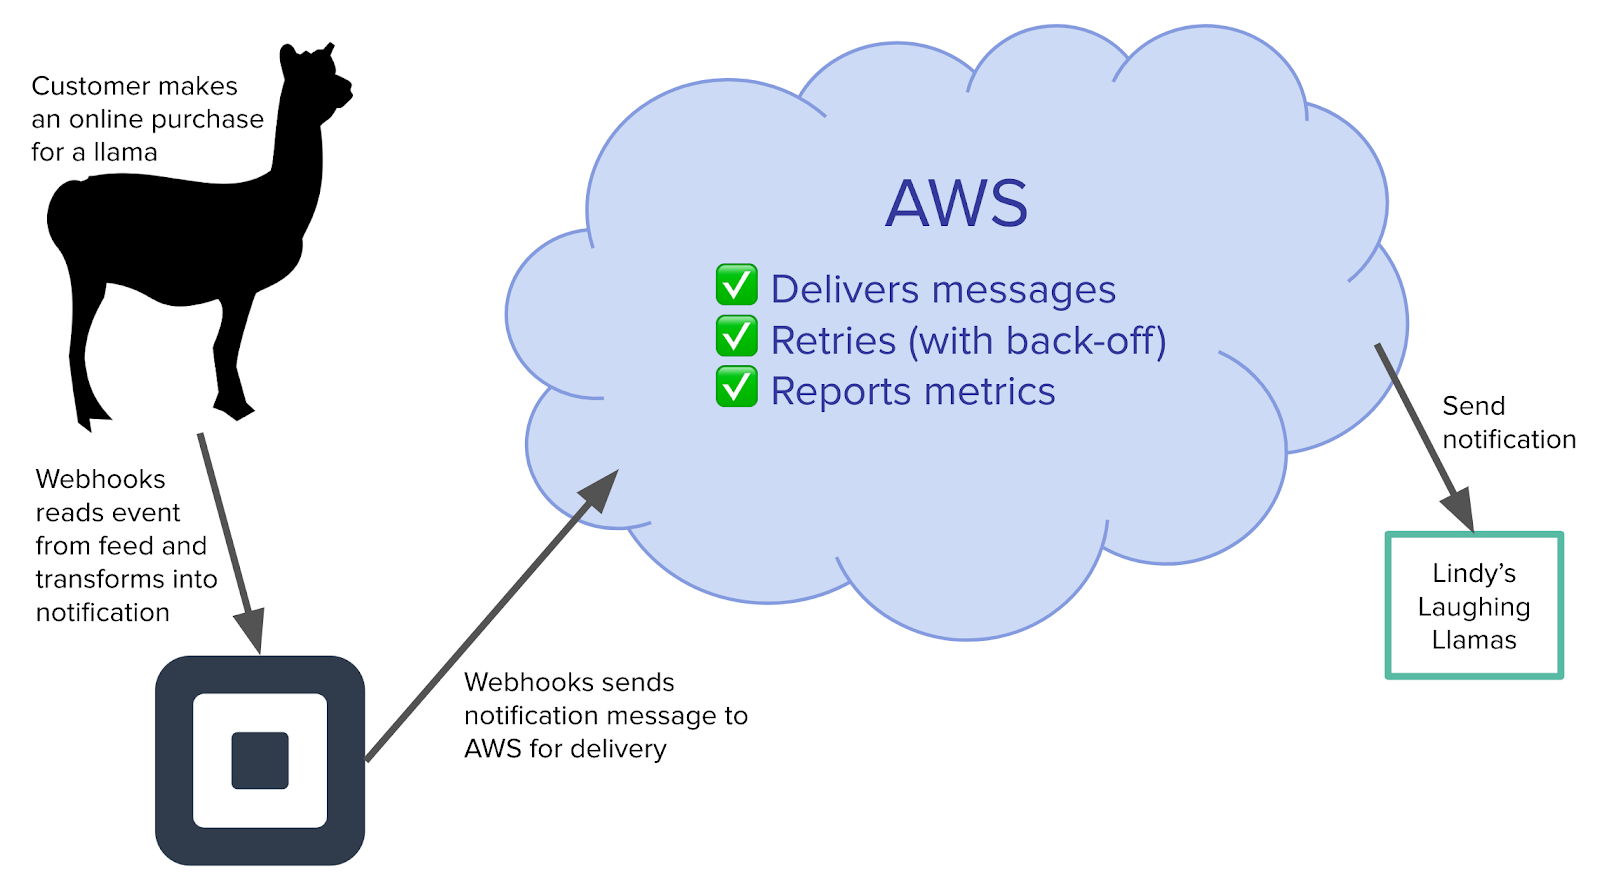 *Using AWS allows Webhooks to decouple event reading and notification delivery.*